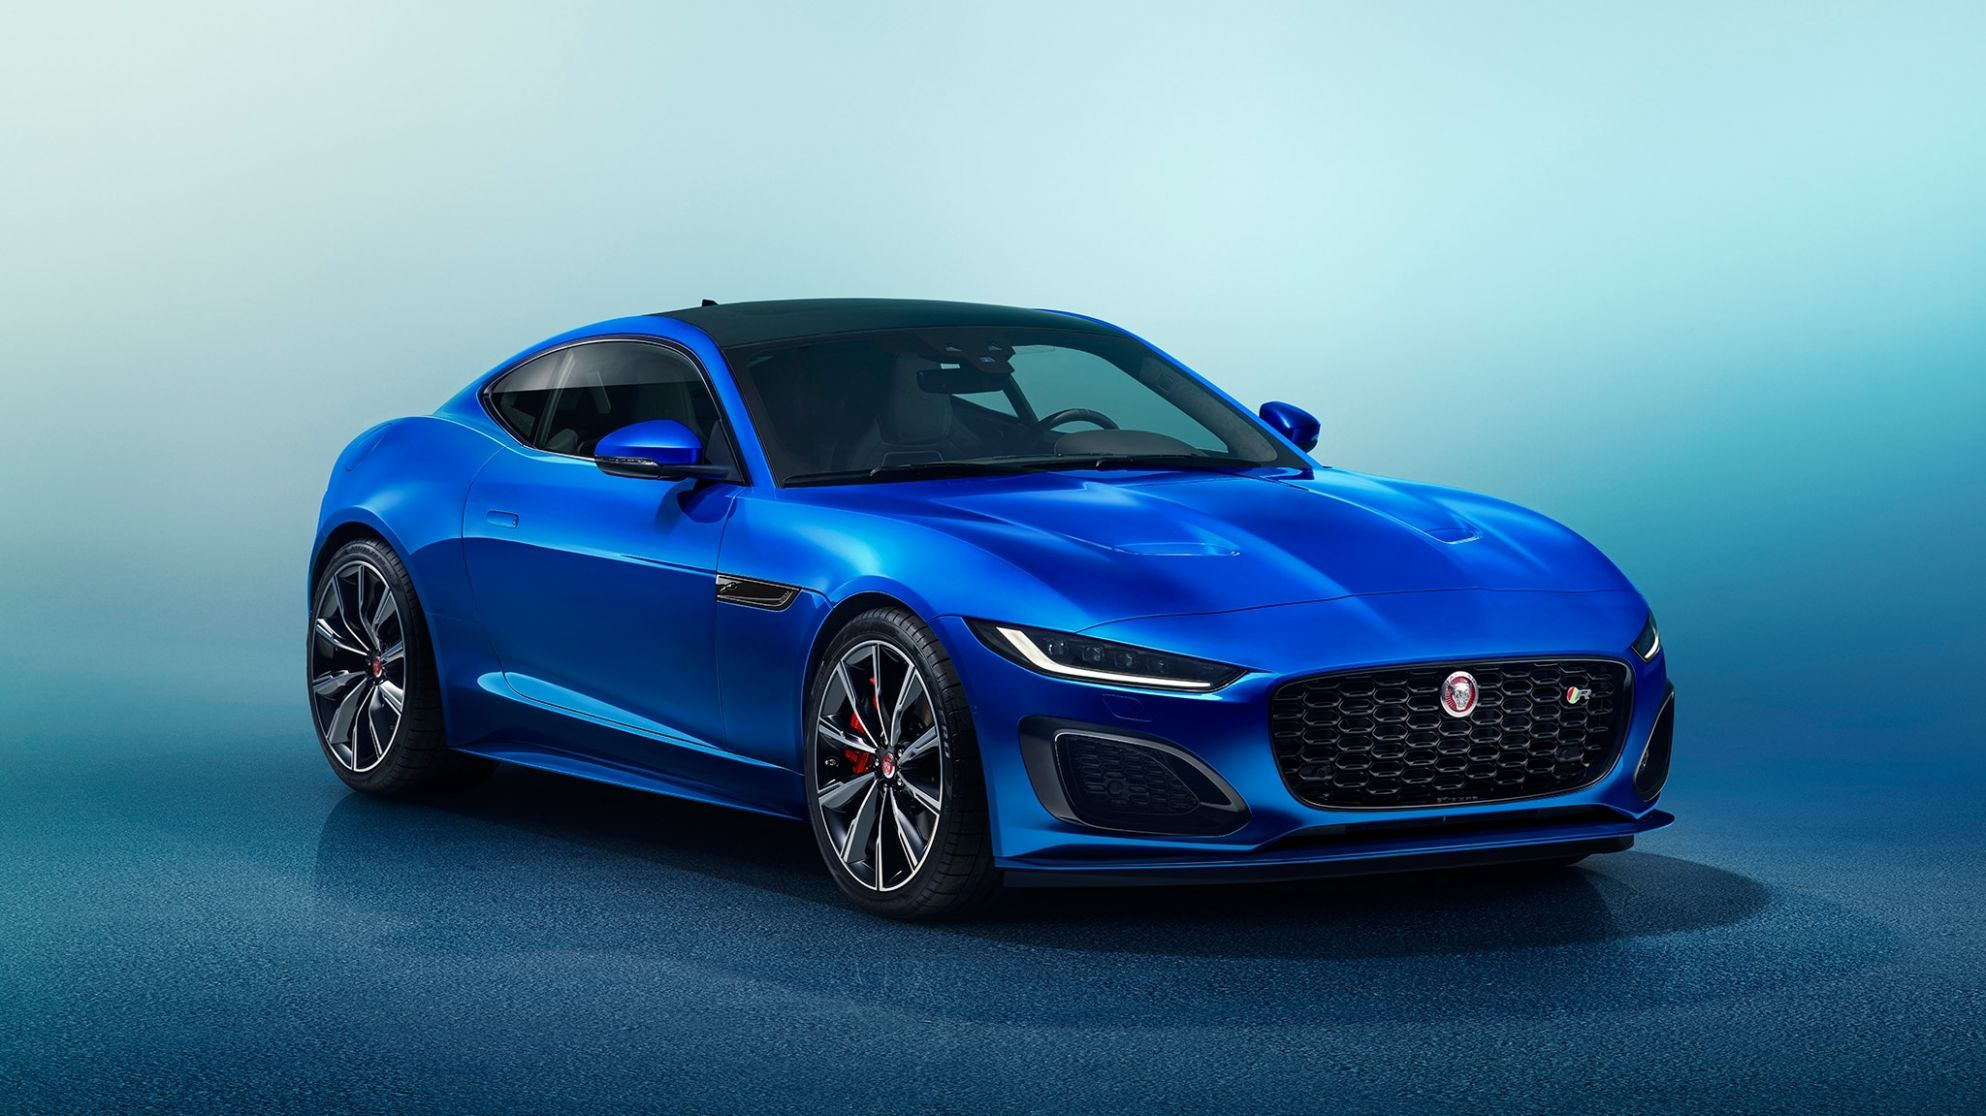 2021 Jaguar F Type Price Pictures In 2020 Jaguar F Type New Jaguar F Type New Jaguar